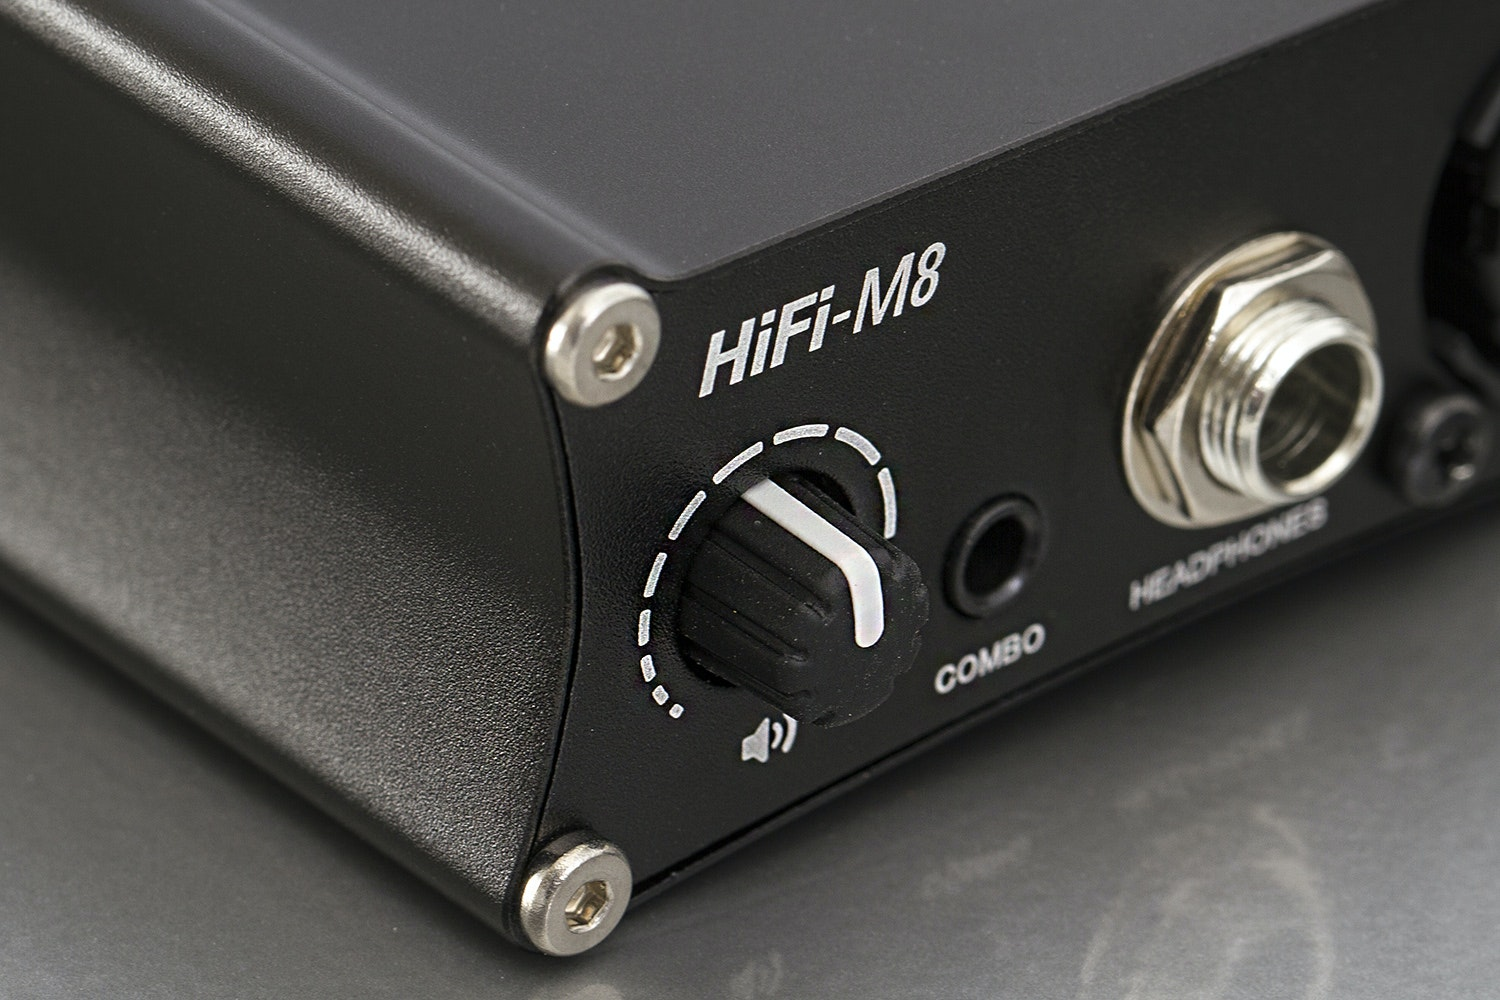 CEntrance HiFi-M8 XL4 Portable DAC/Amplifier